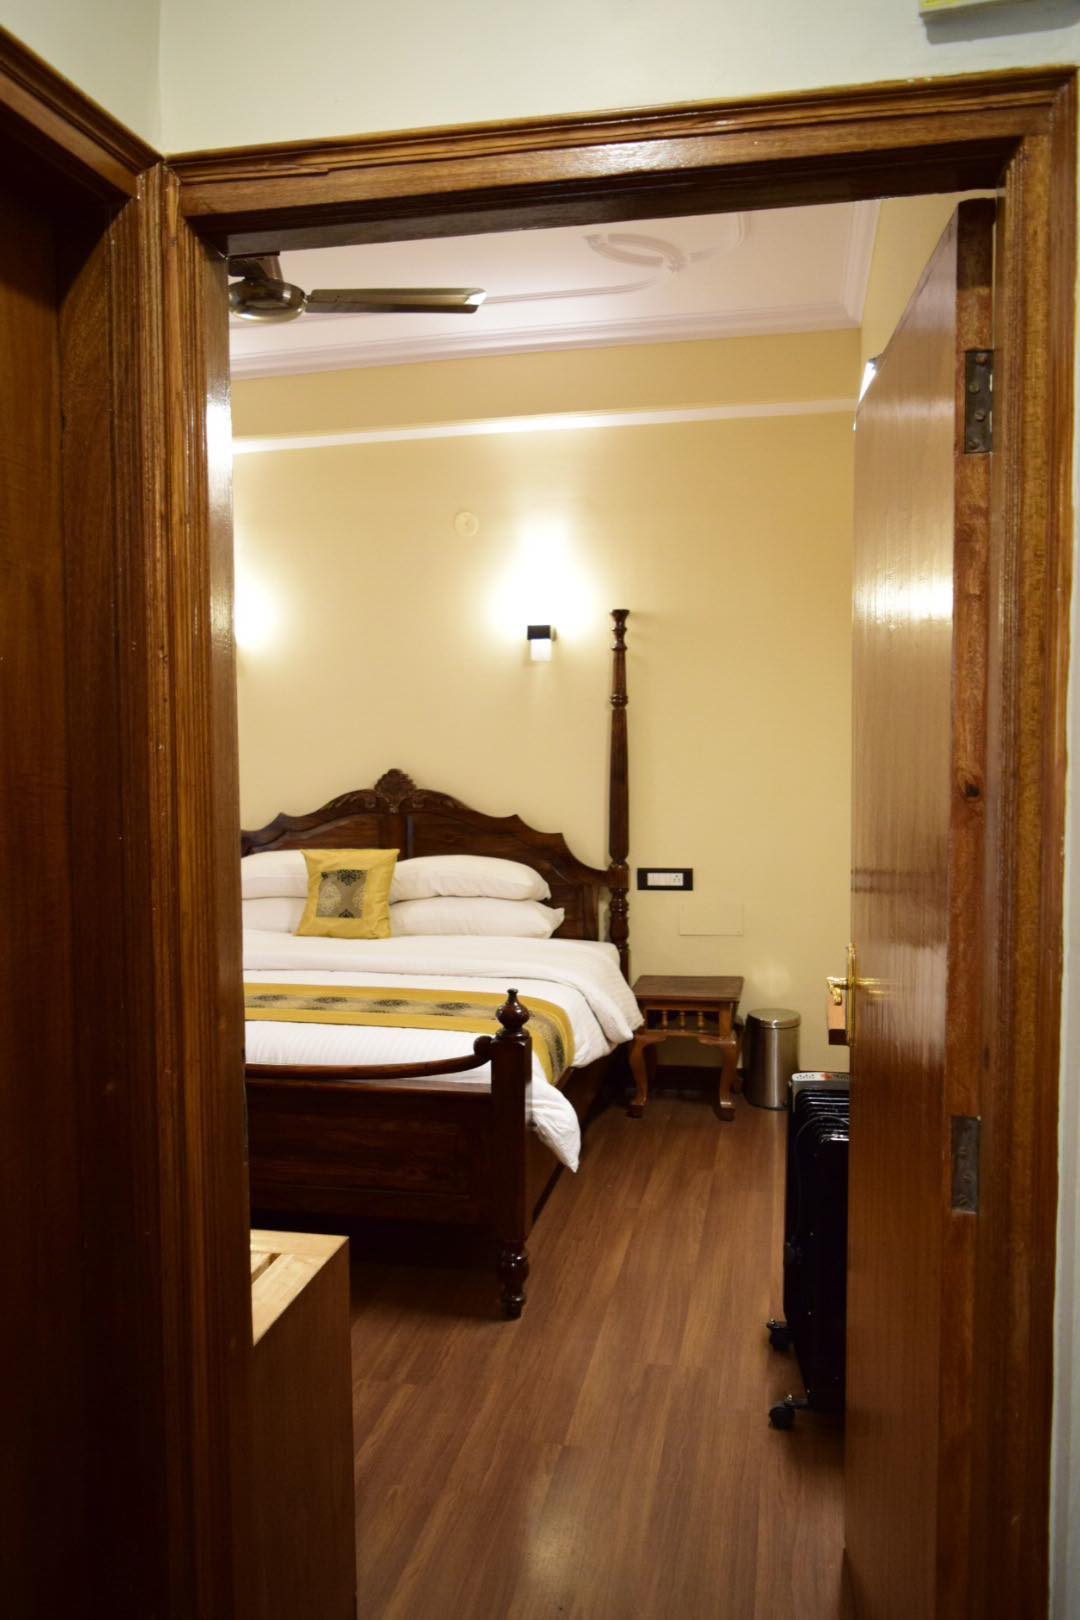 Family Suite, THE BODHI TREE BNB, SHIMLA - Budget Hotels in Shimla